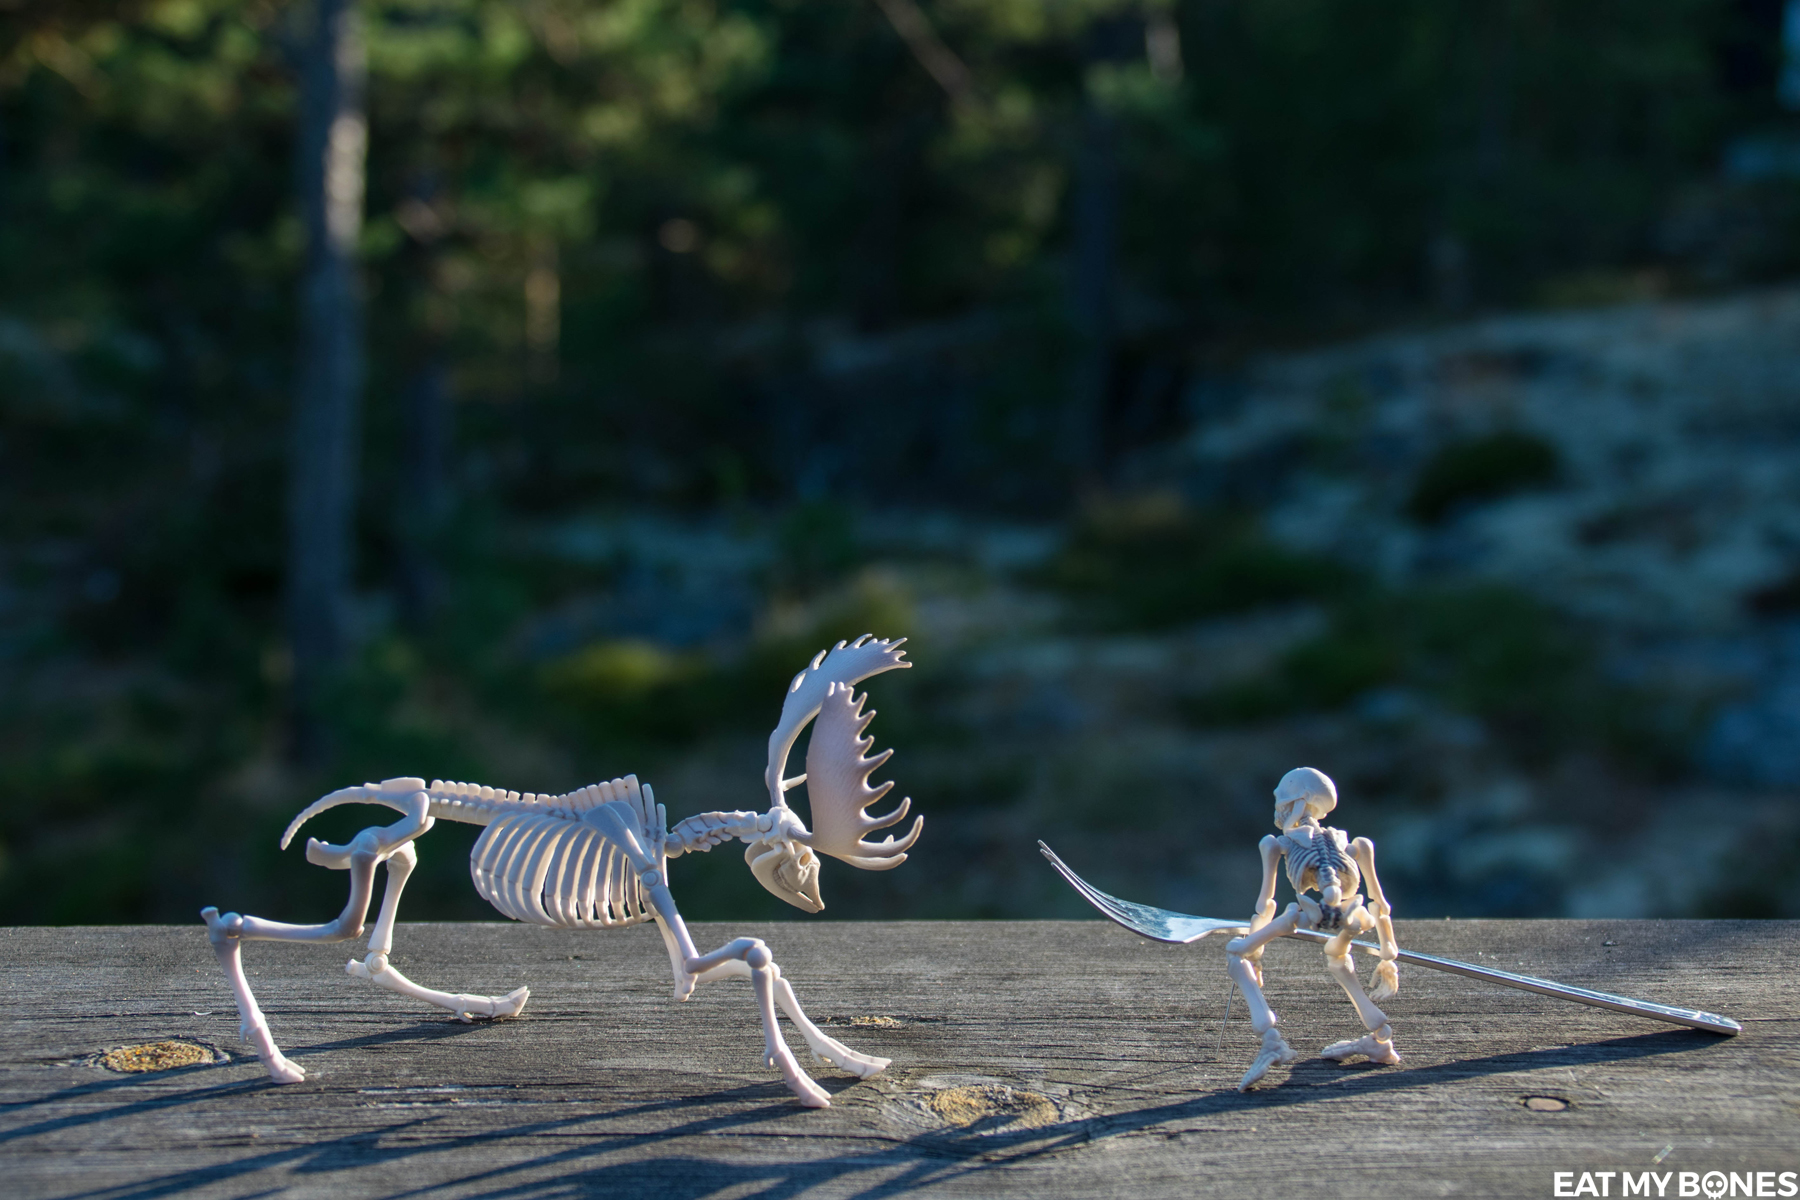 Sweden : playing together - Pose Skeleton - Toy photography - Miniature - Eat my Bones